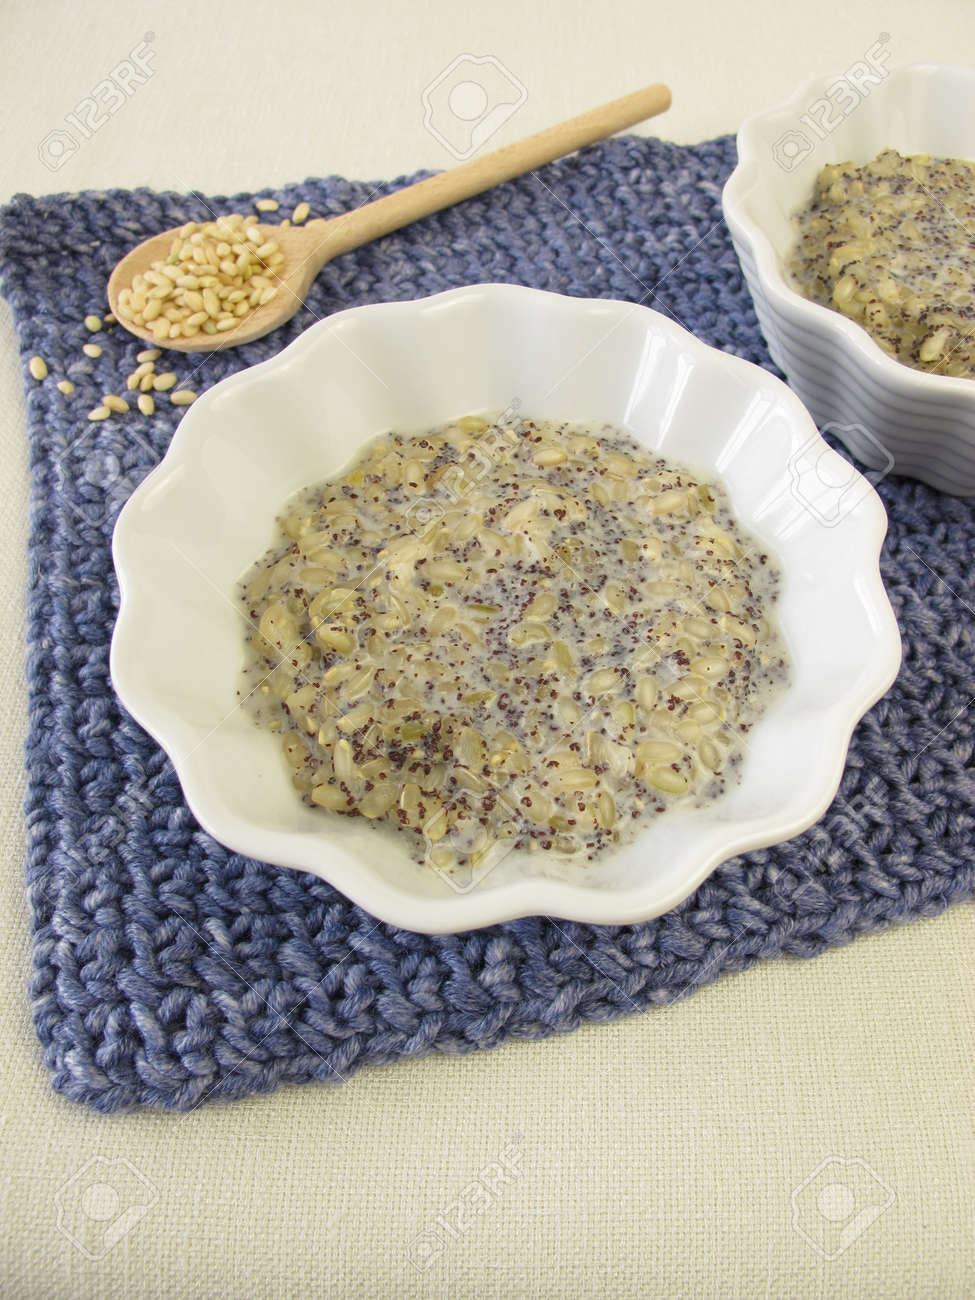 Mochi milk rice pudding with poppy seeds